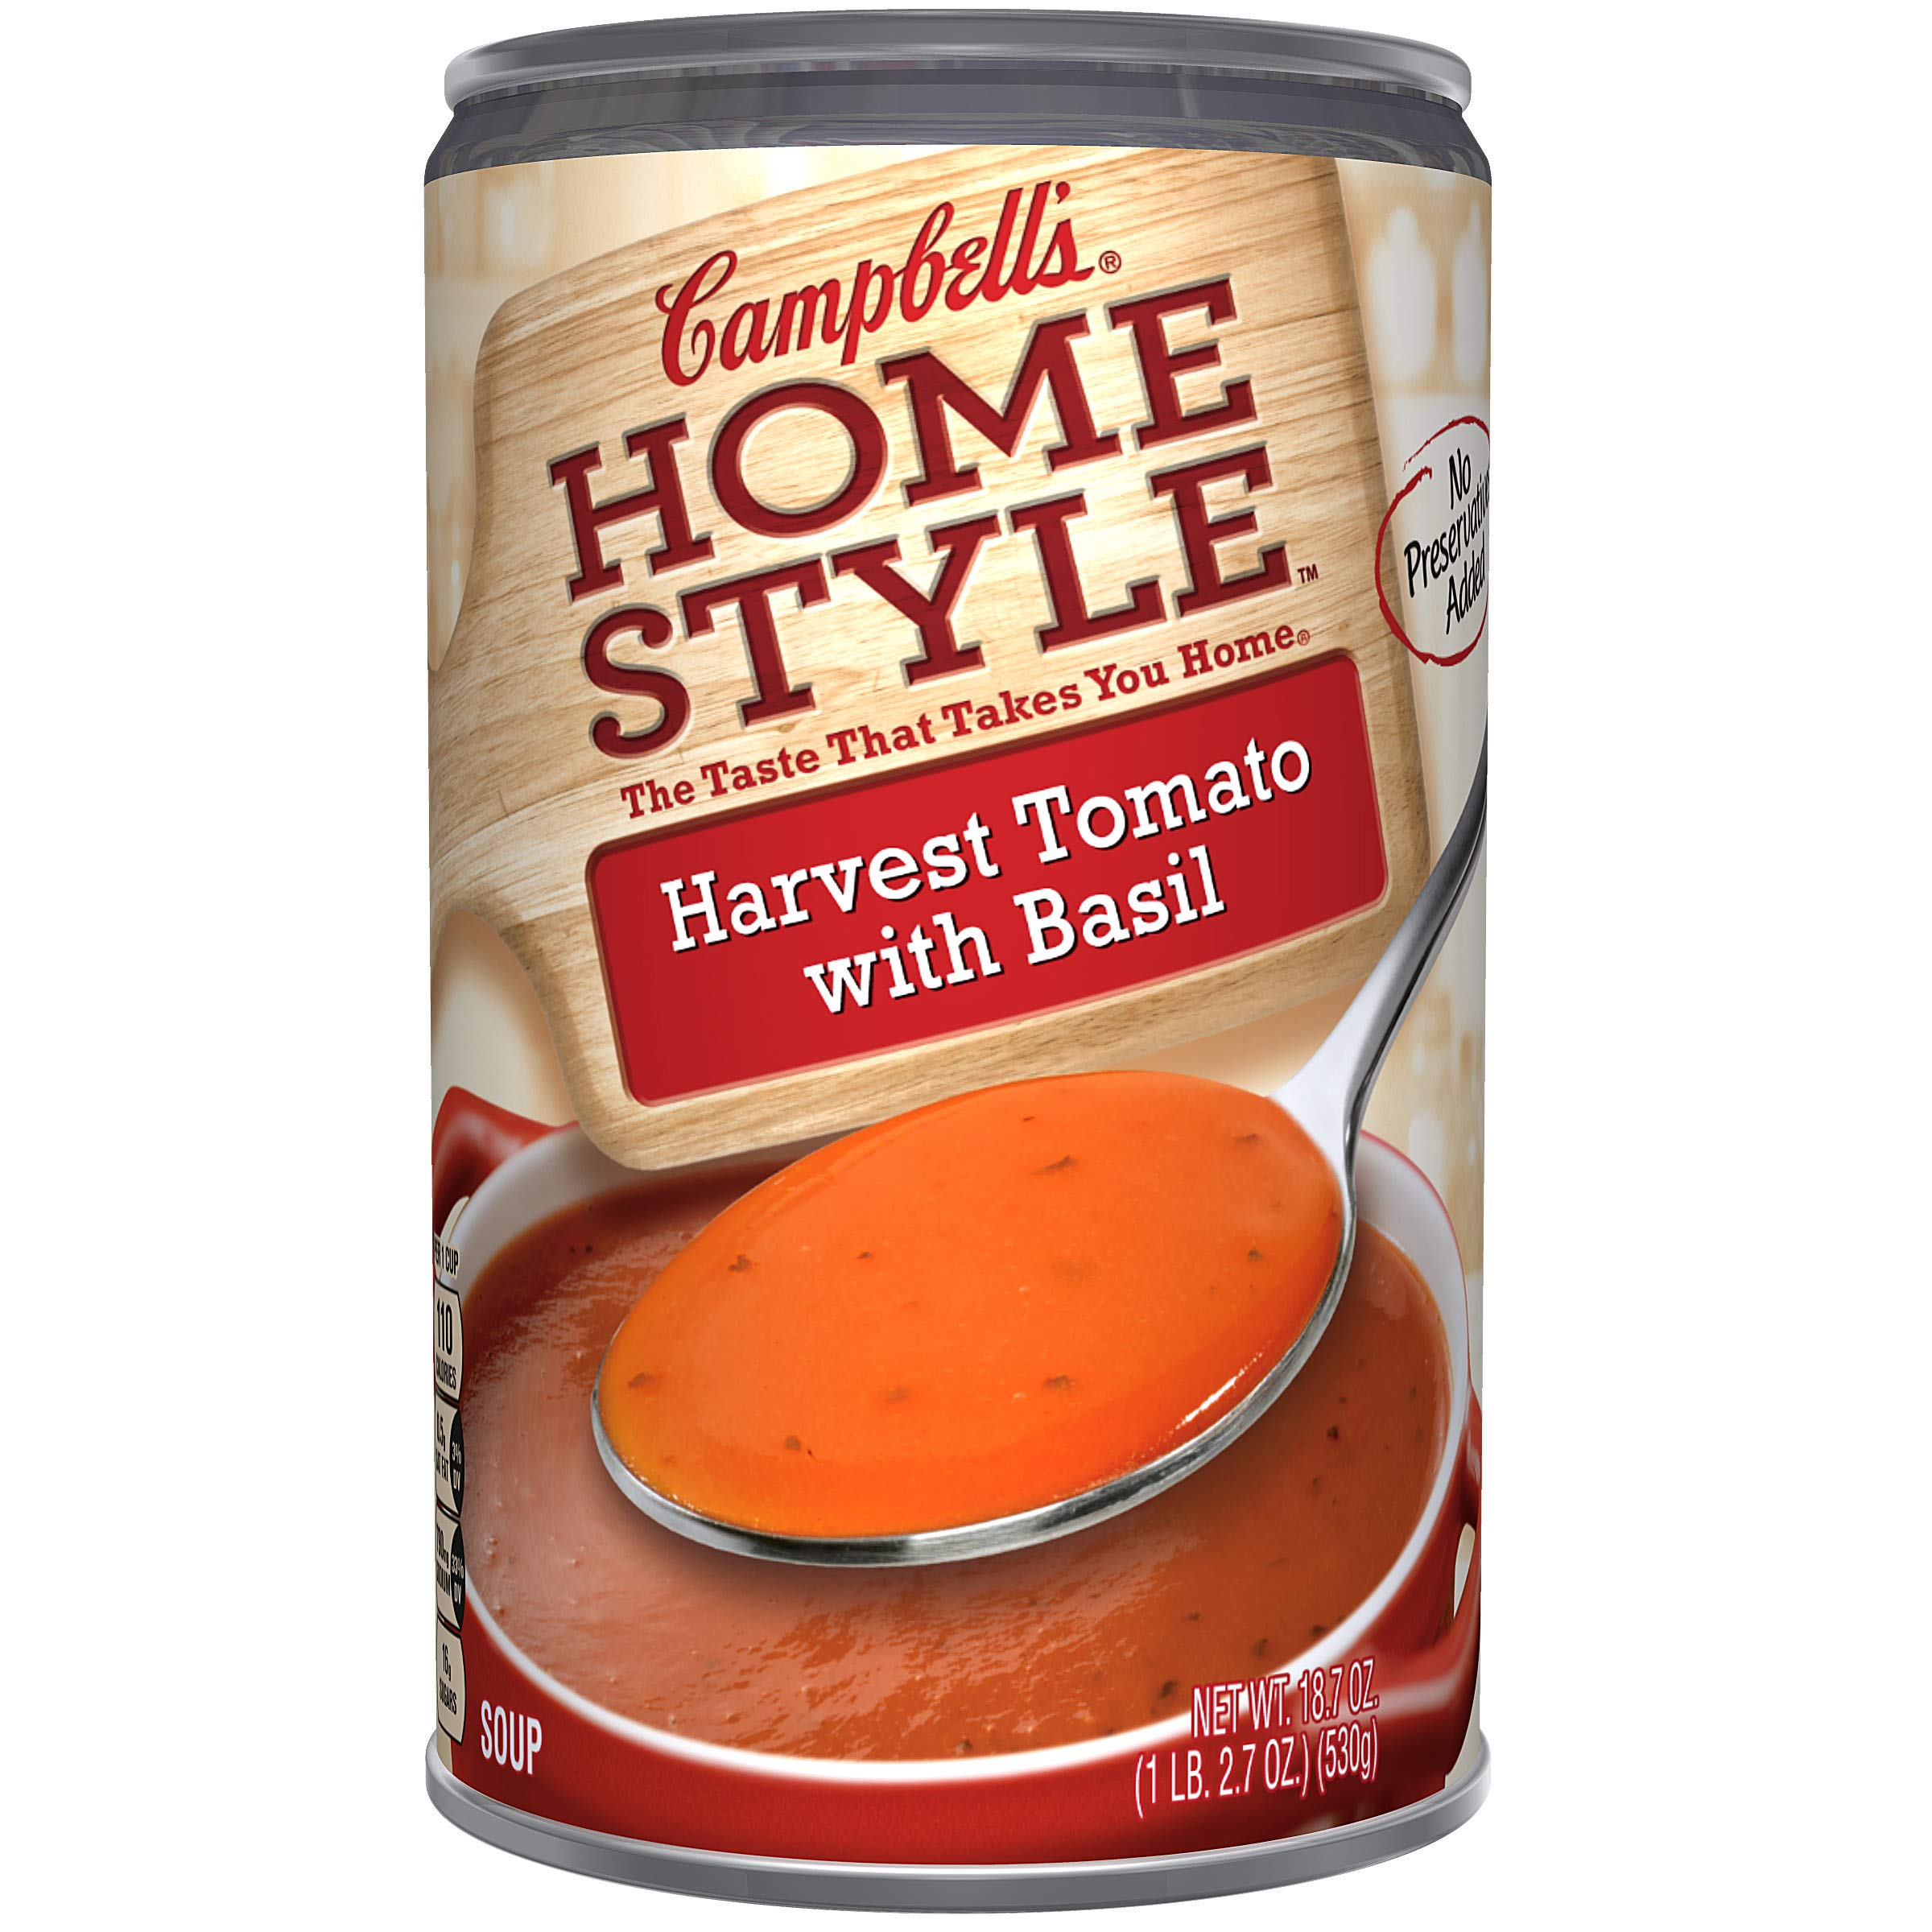 Campbells Homestyle Harvest Tomato with Basil Soup, 18.7 oz.